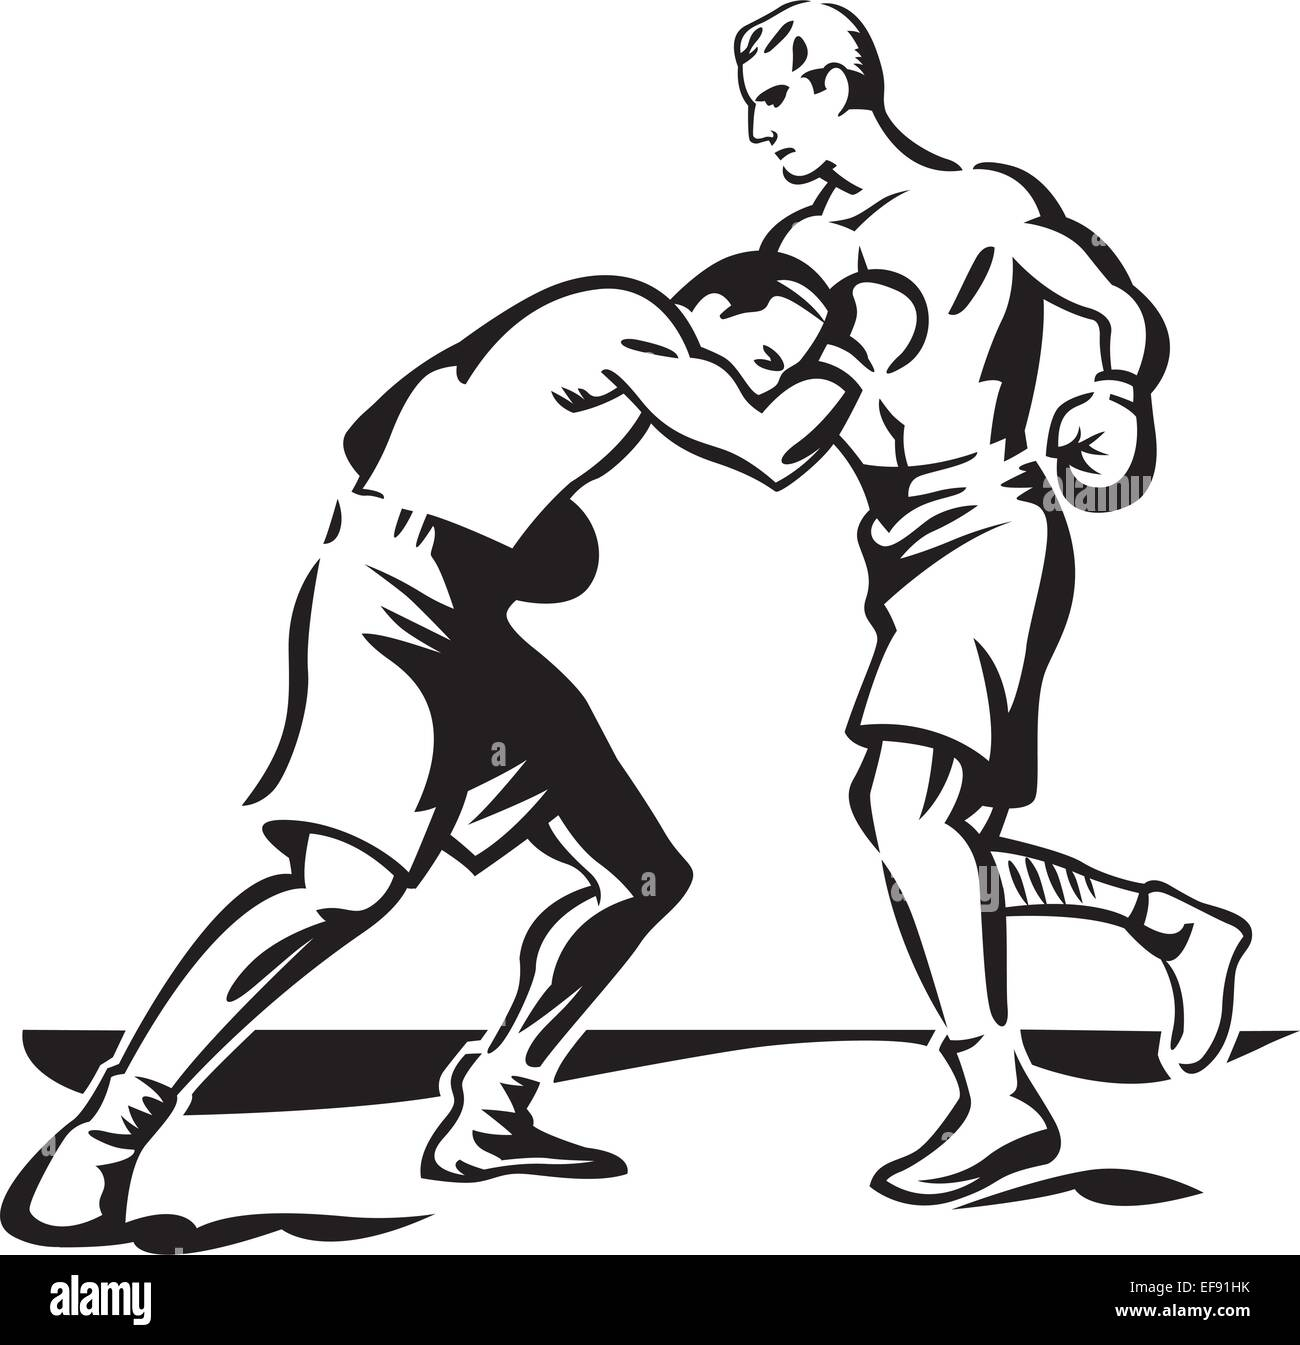 two boxers fighting wiring diagrams \u2022two boxers fighting stock vector art illustration vector image rh alamy com two female boxers fighting